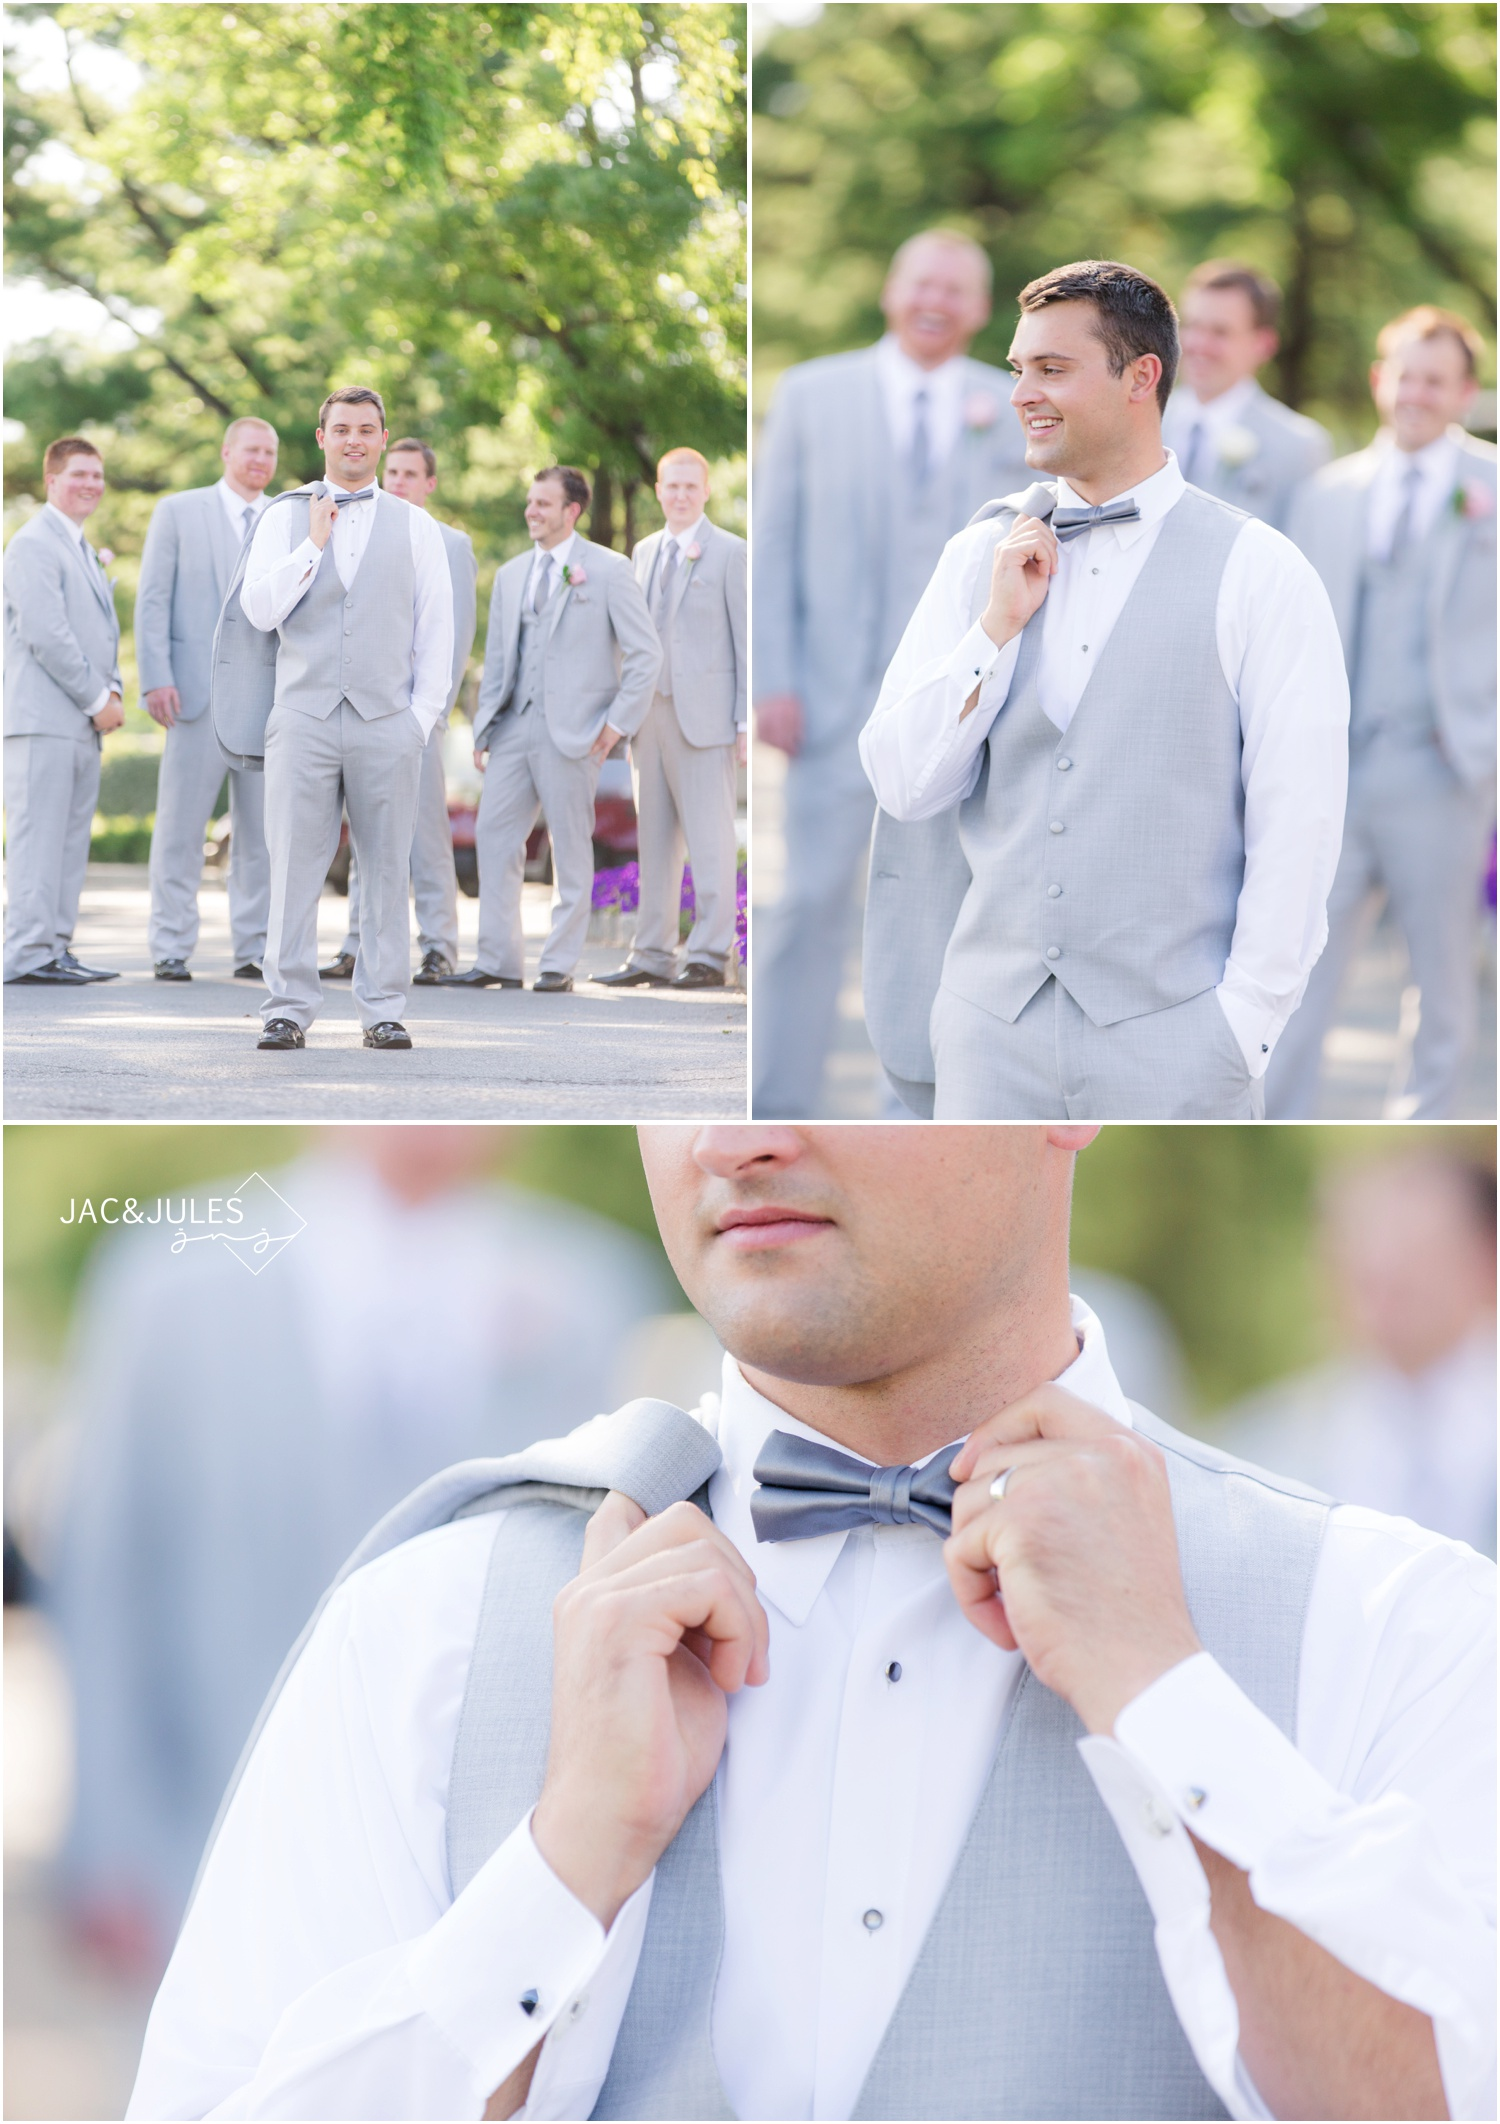 groom and groomsmen photos at forsgate country club in Monroe, NJ.